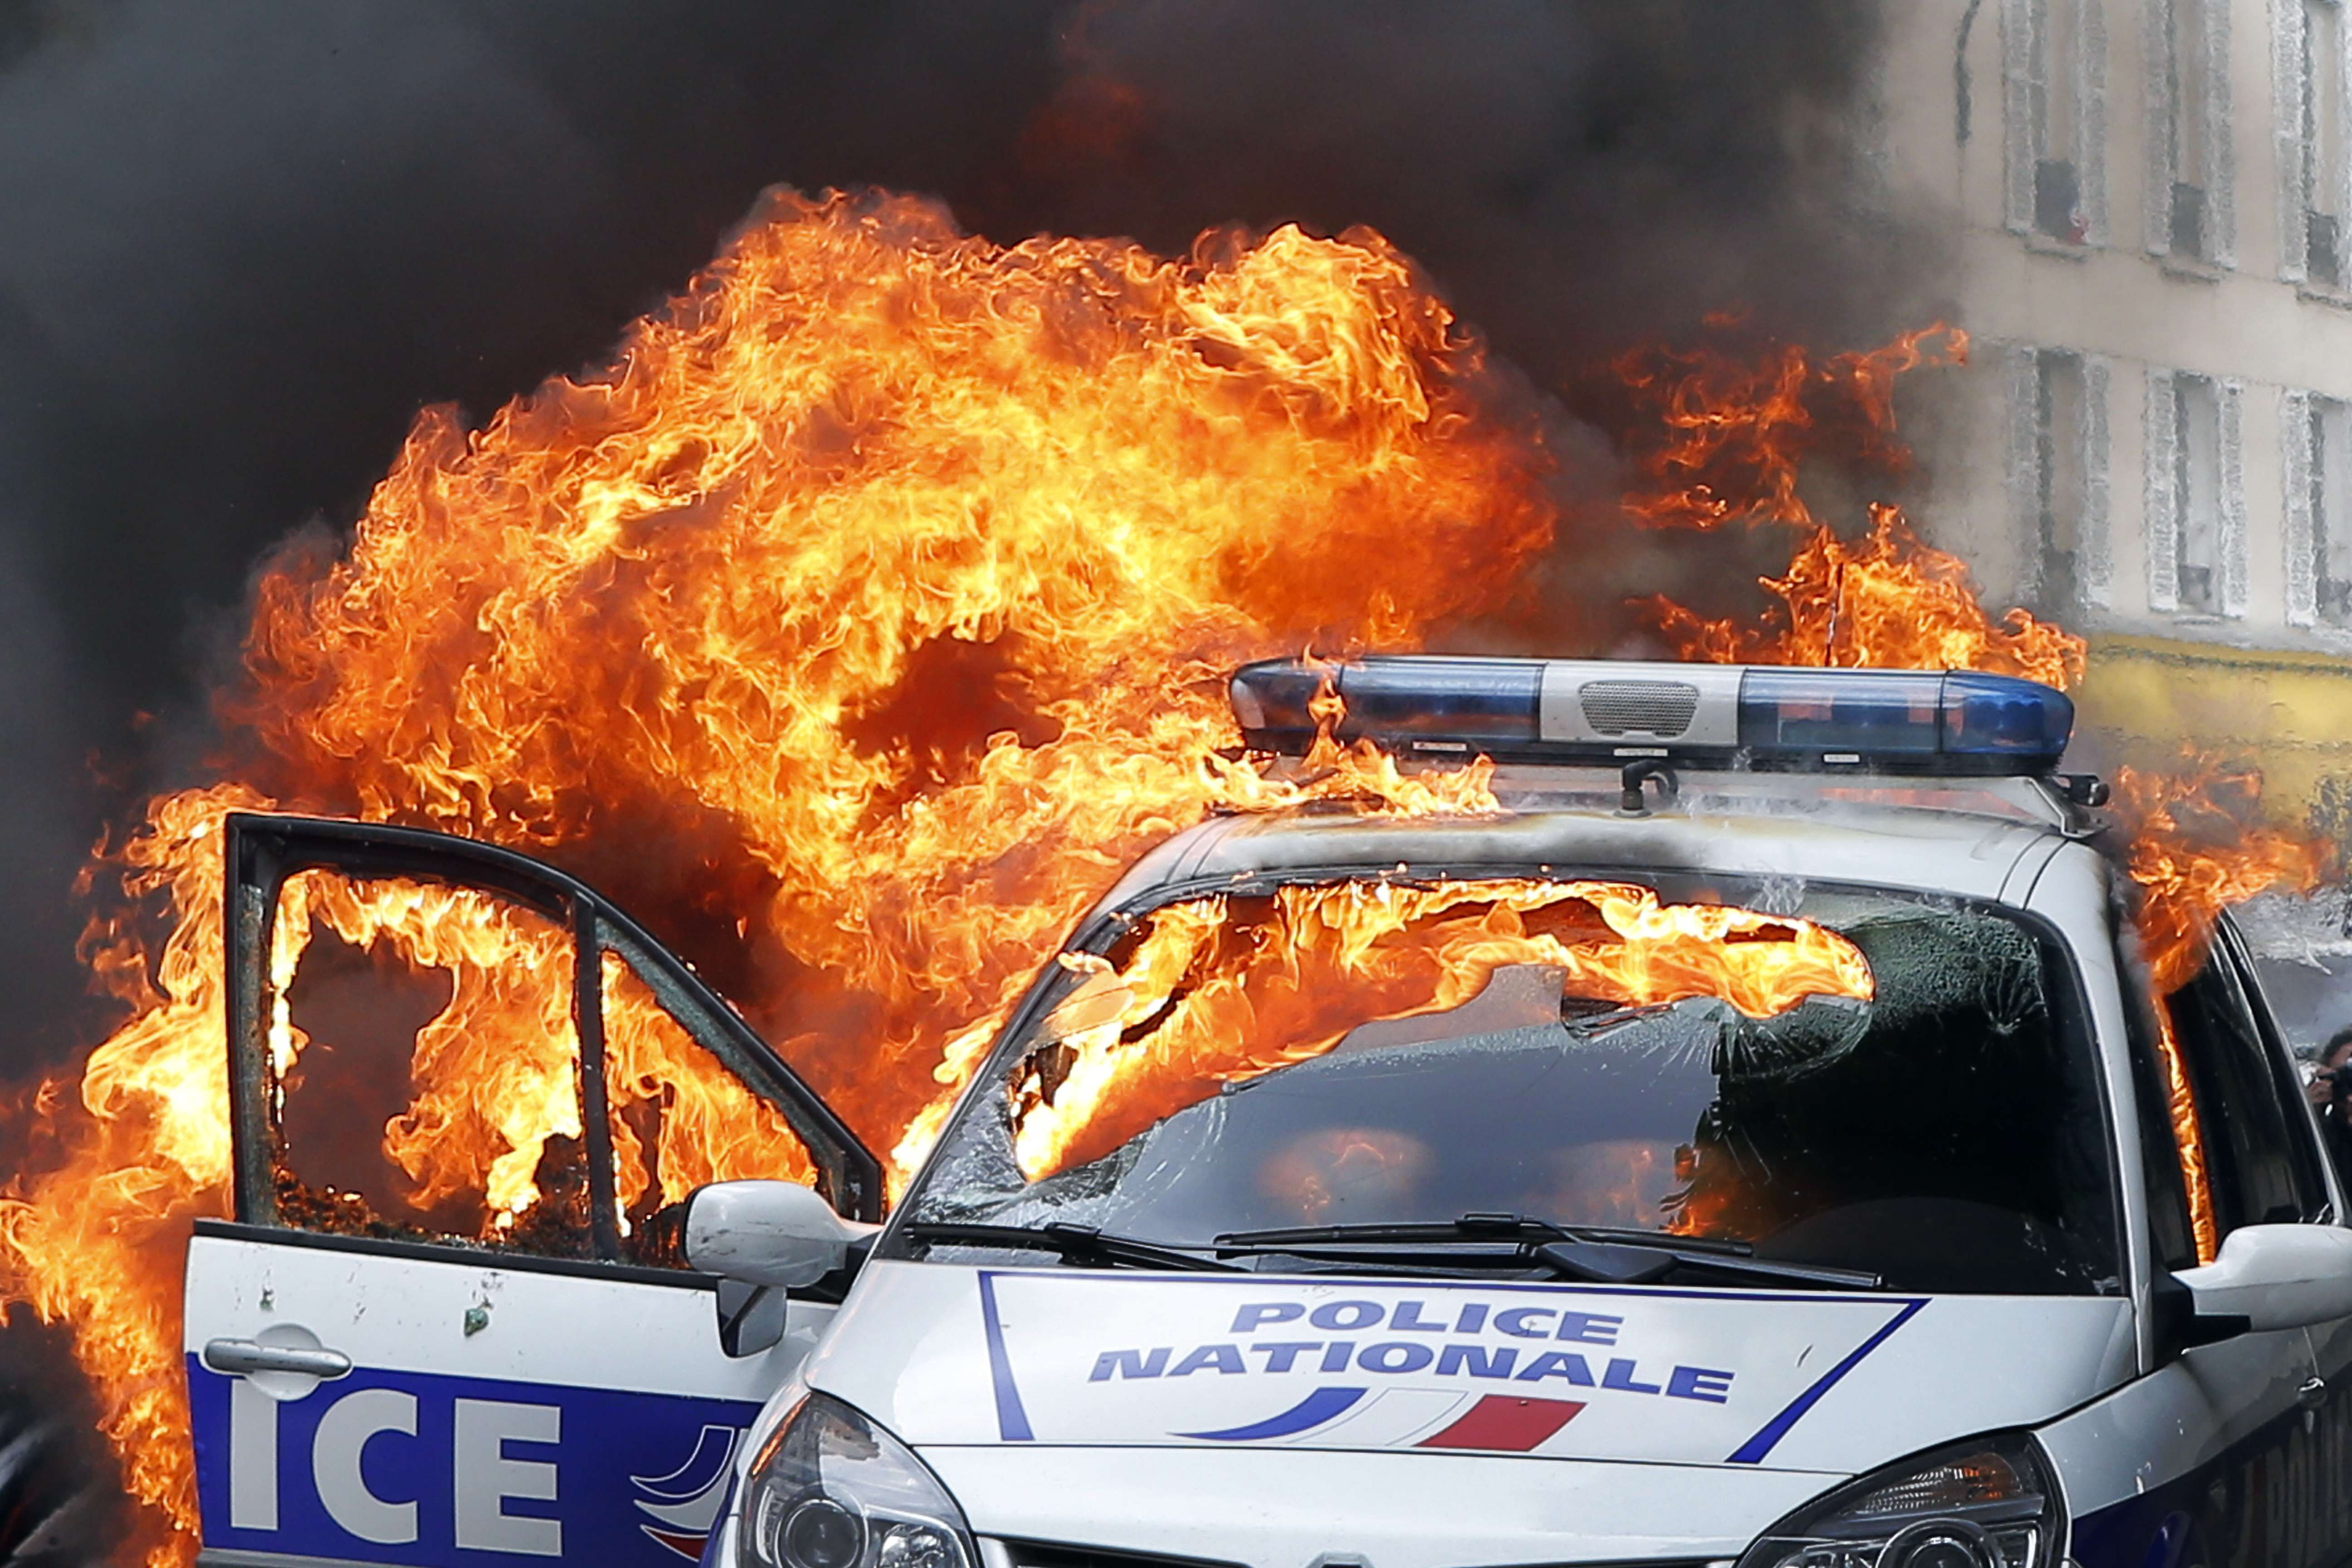 Dramatic Footage Shows Mob Torching Police Car With Officers Inside carfire1